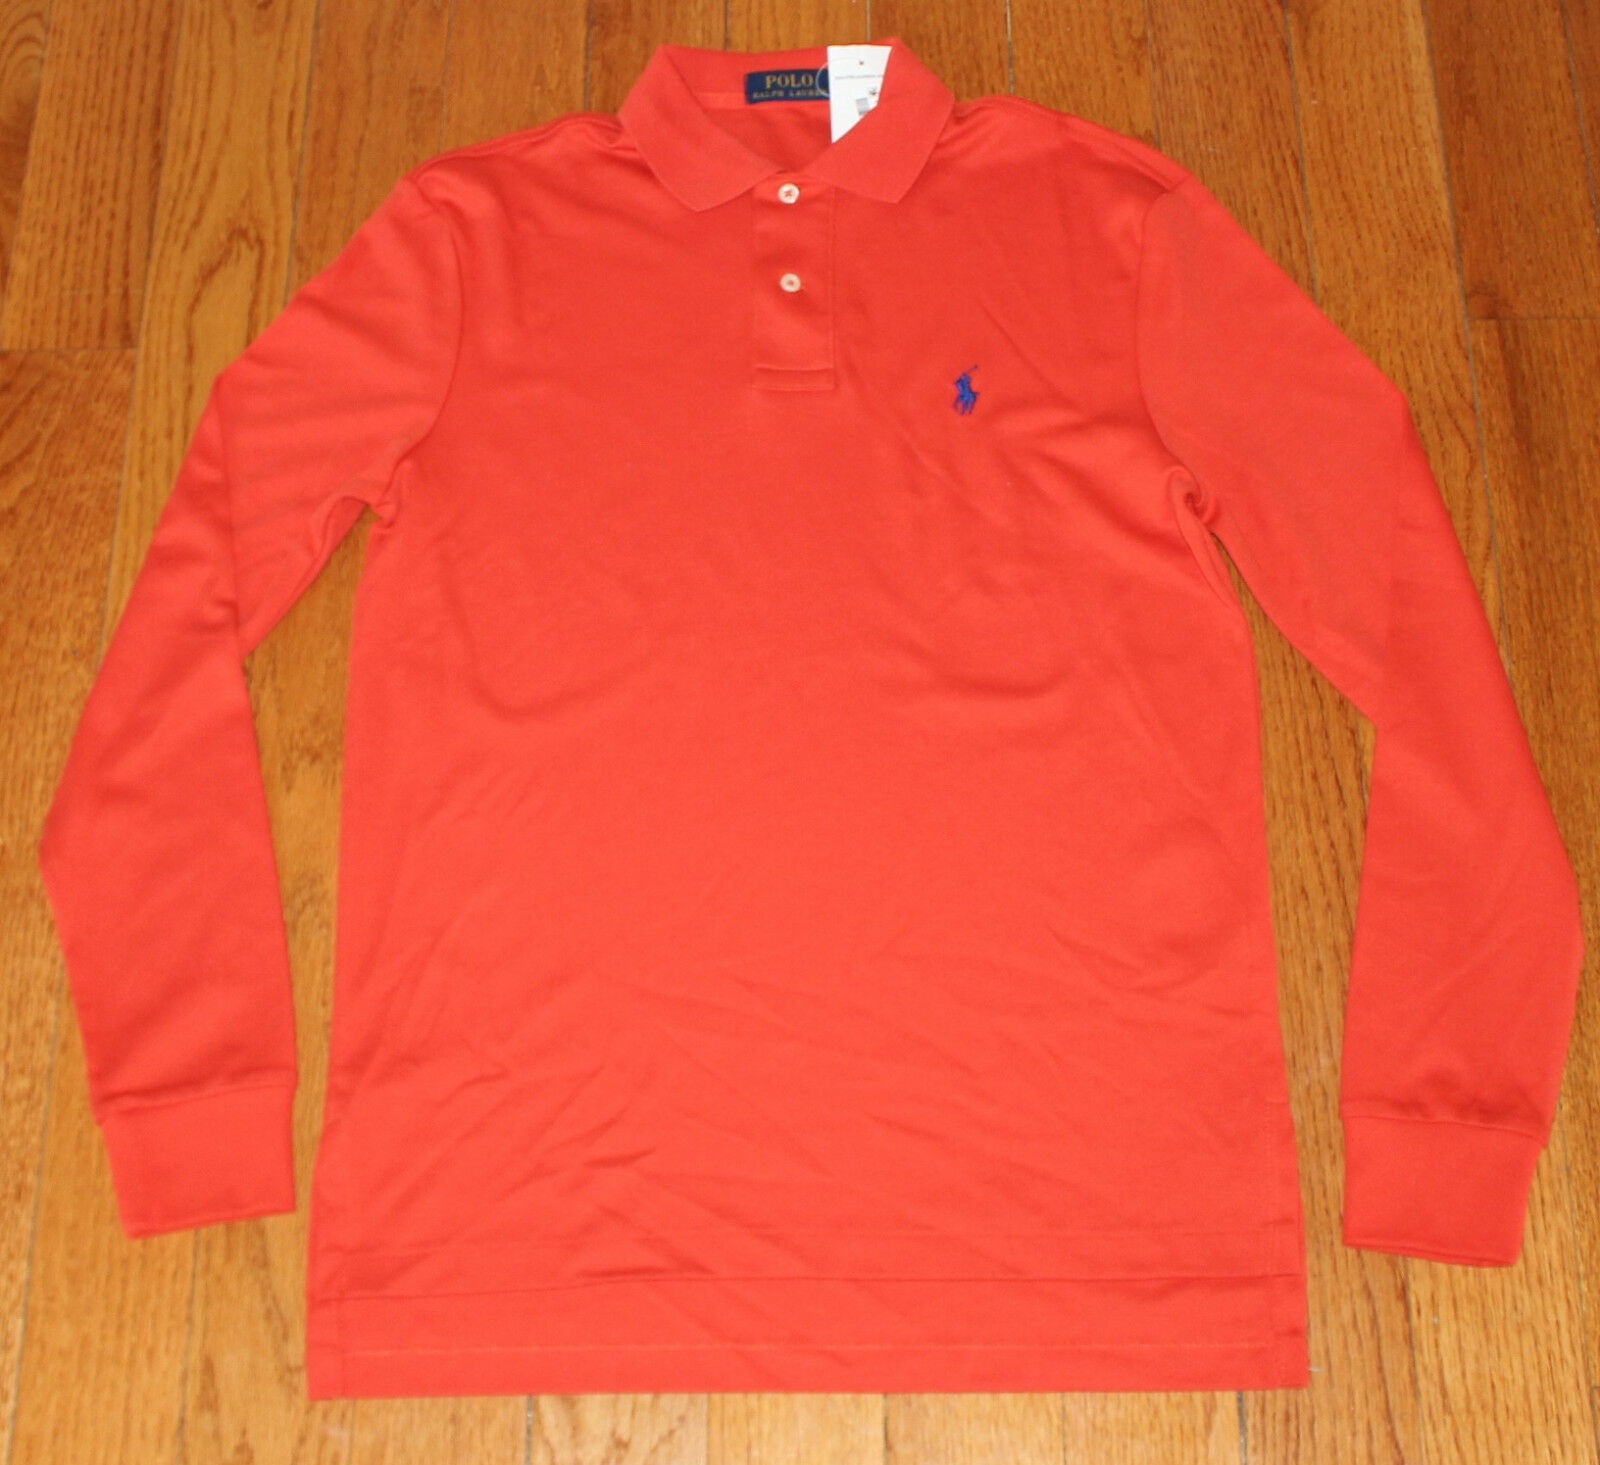 79.99 Brand Nuovo POLO Ralph Lauren SMALL Long Sleeve SMALL Lauren S arancia LS blu Pony NWT 6fcea6